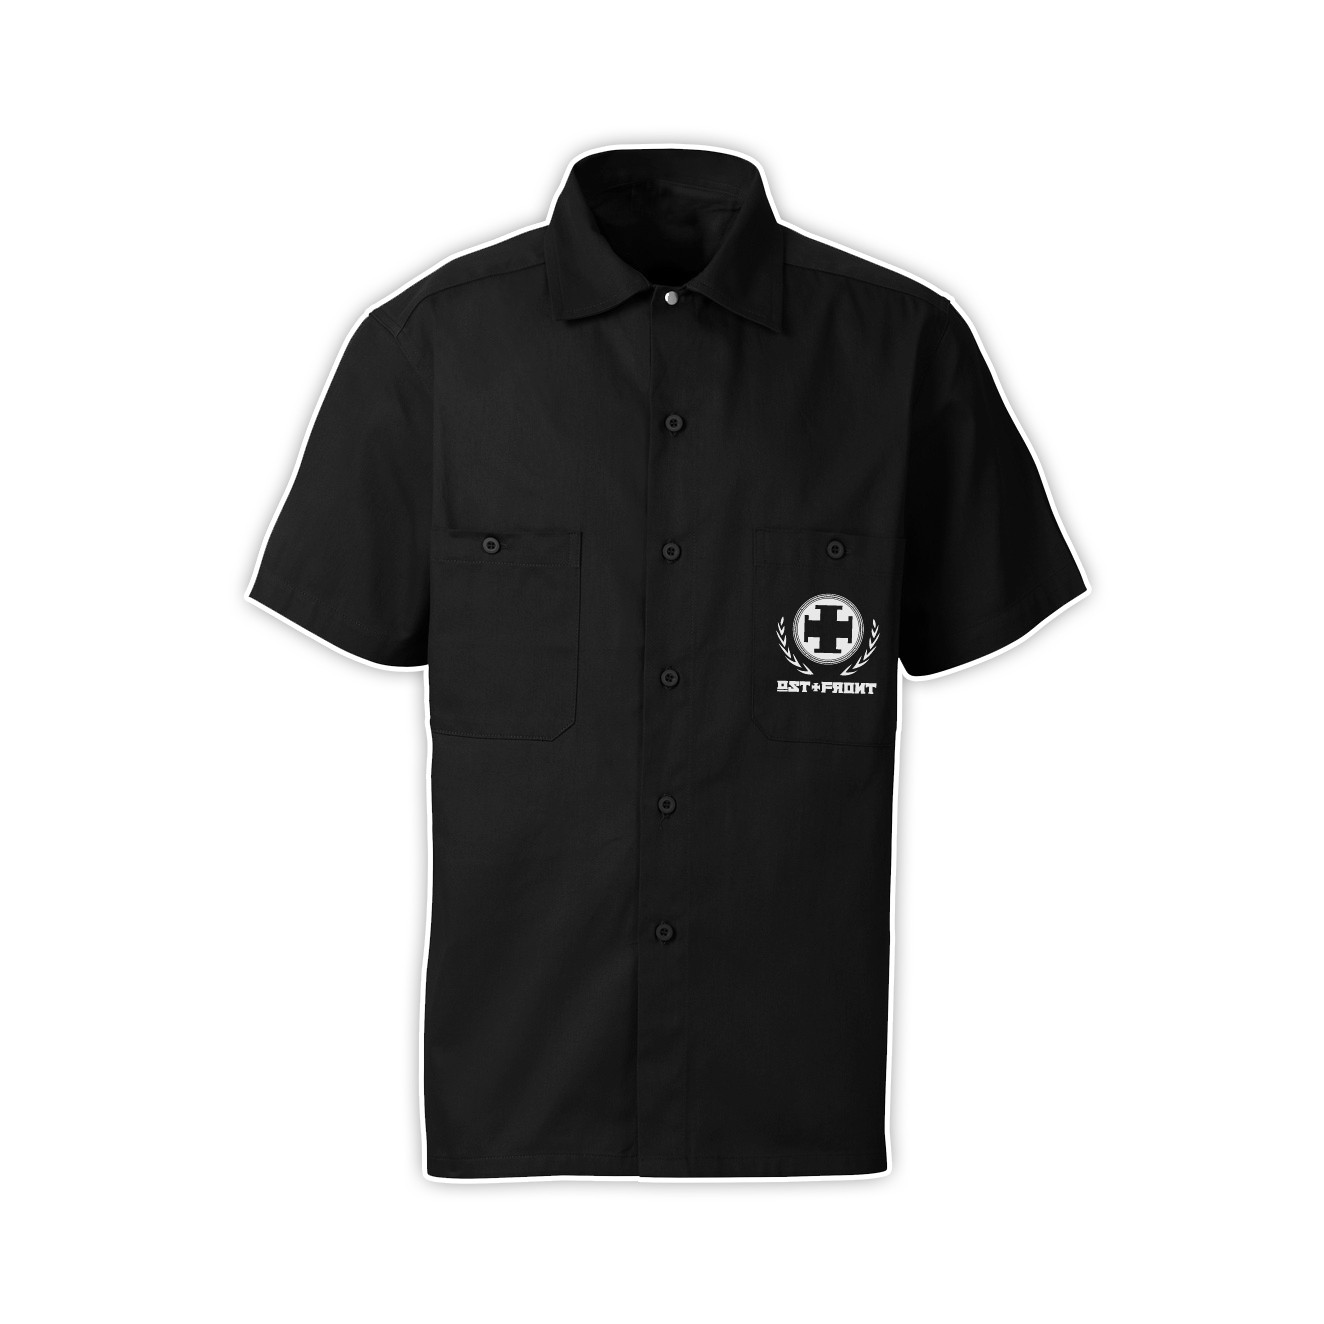 OST+FRONT - Logo - Worker Shirt